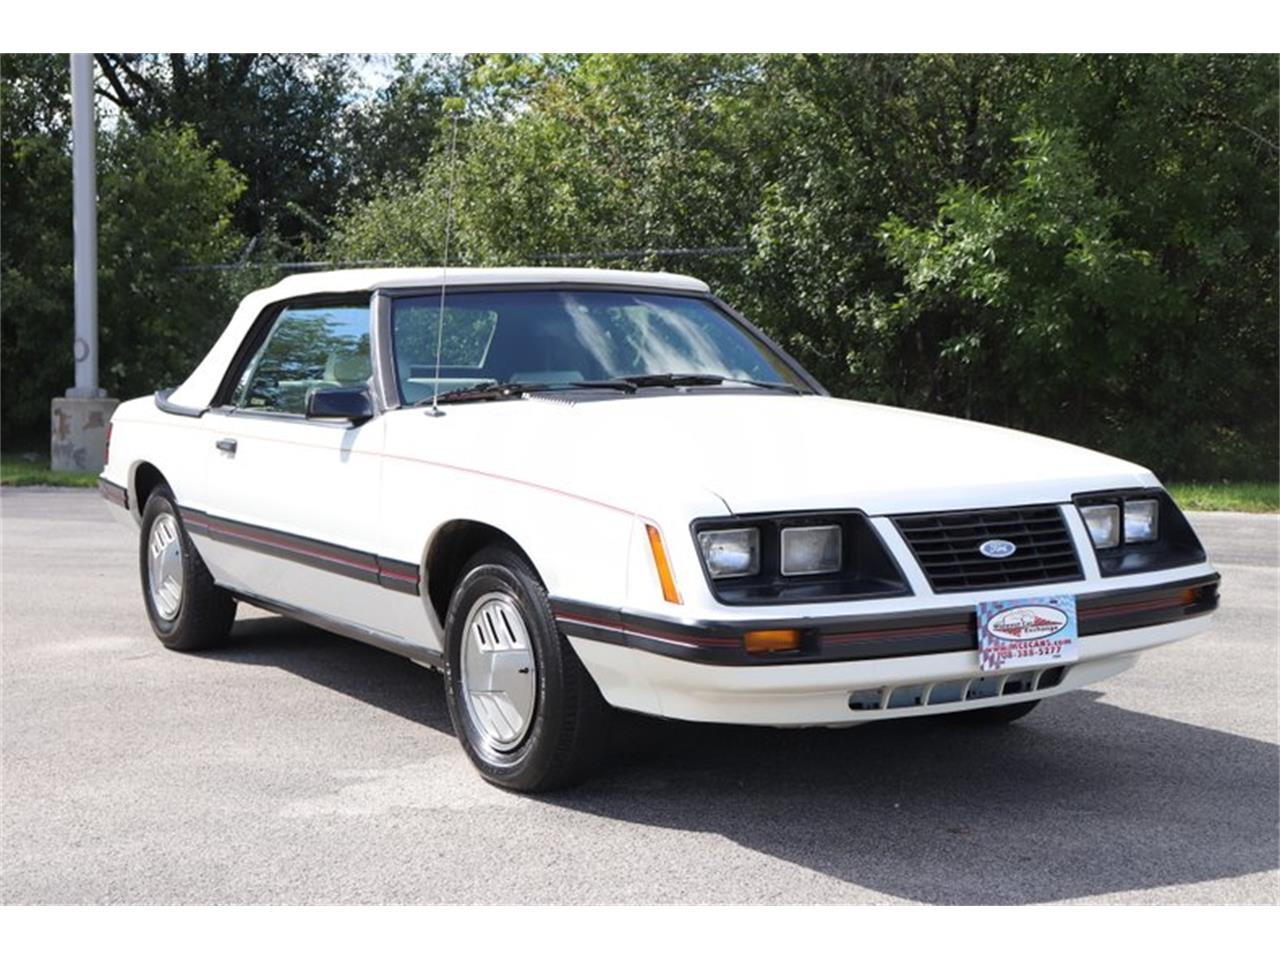 Large Picture of 1983 Mustang located in Alsip Illinois - $7,900.00 - OHLI